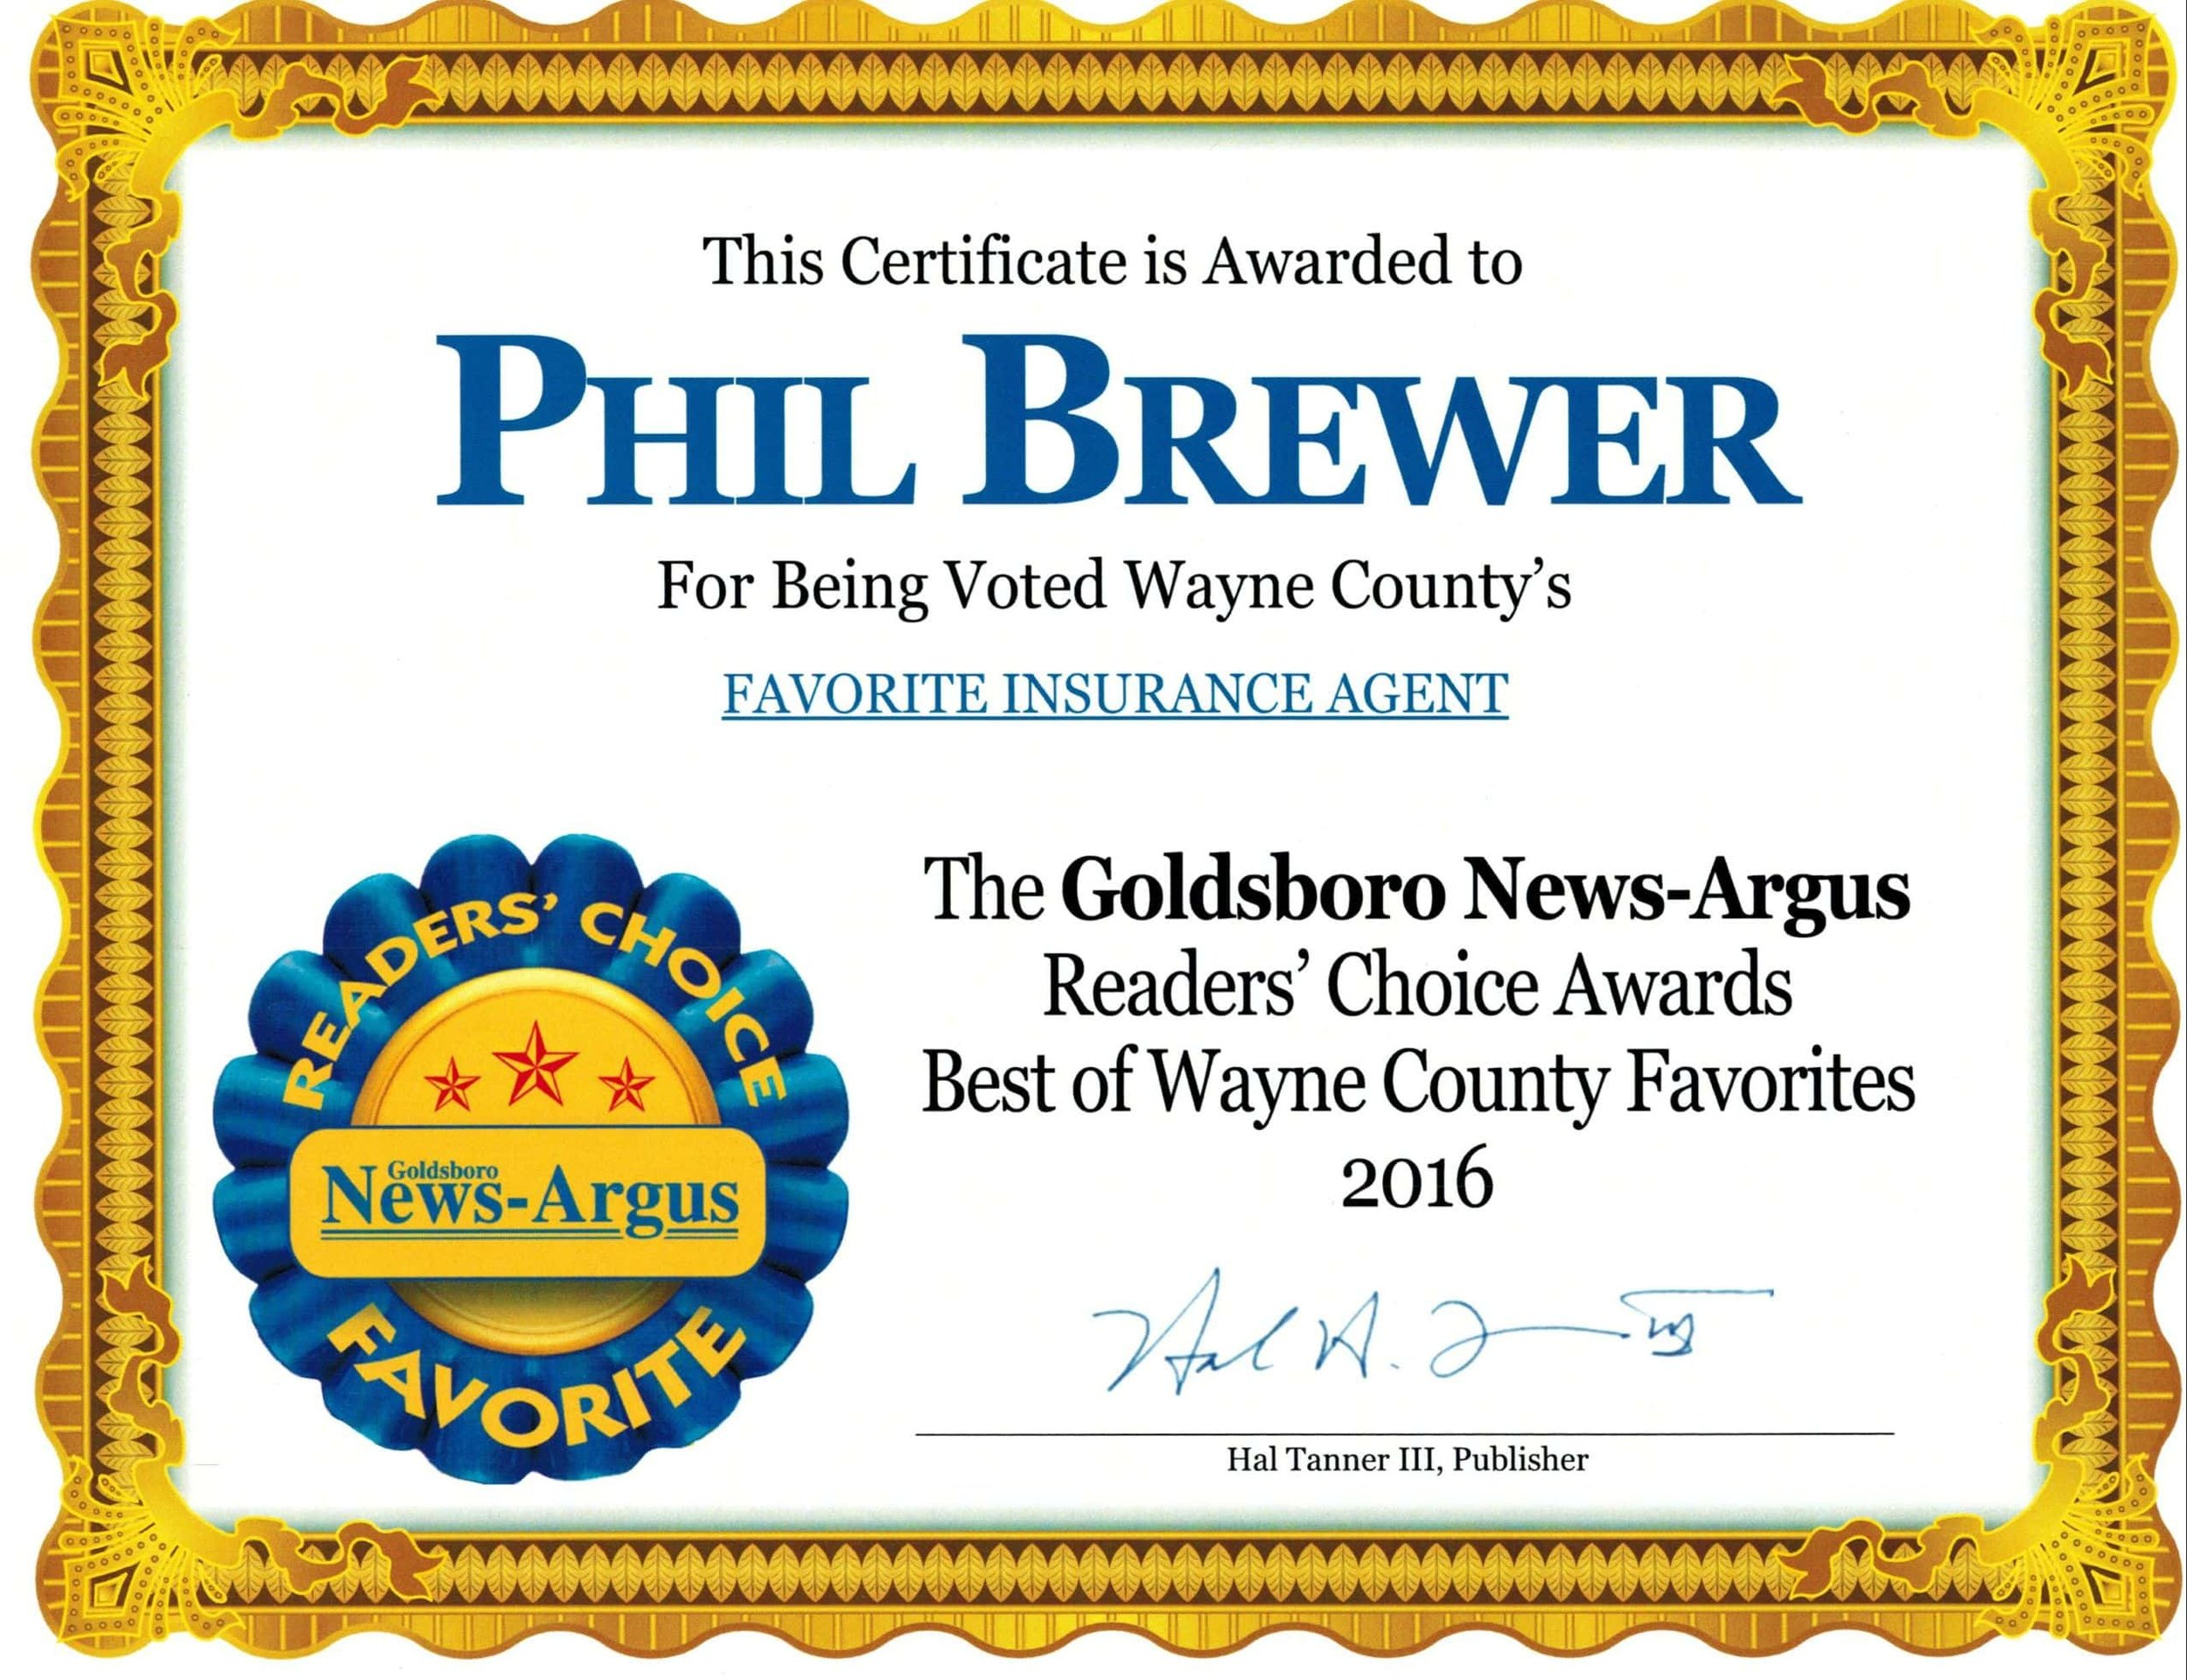 Goldsboro news-argus 2016 readers choice favorite insurance agent winner and HONORABLE mention for insurance agency!